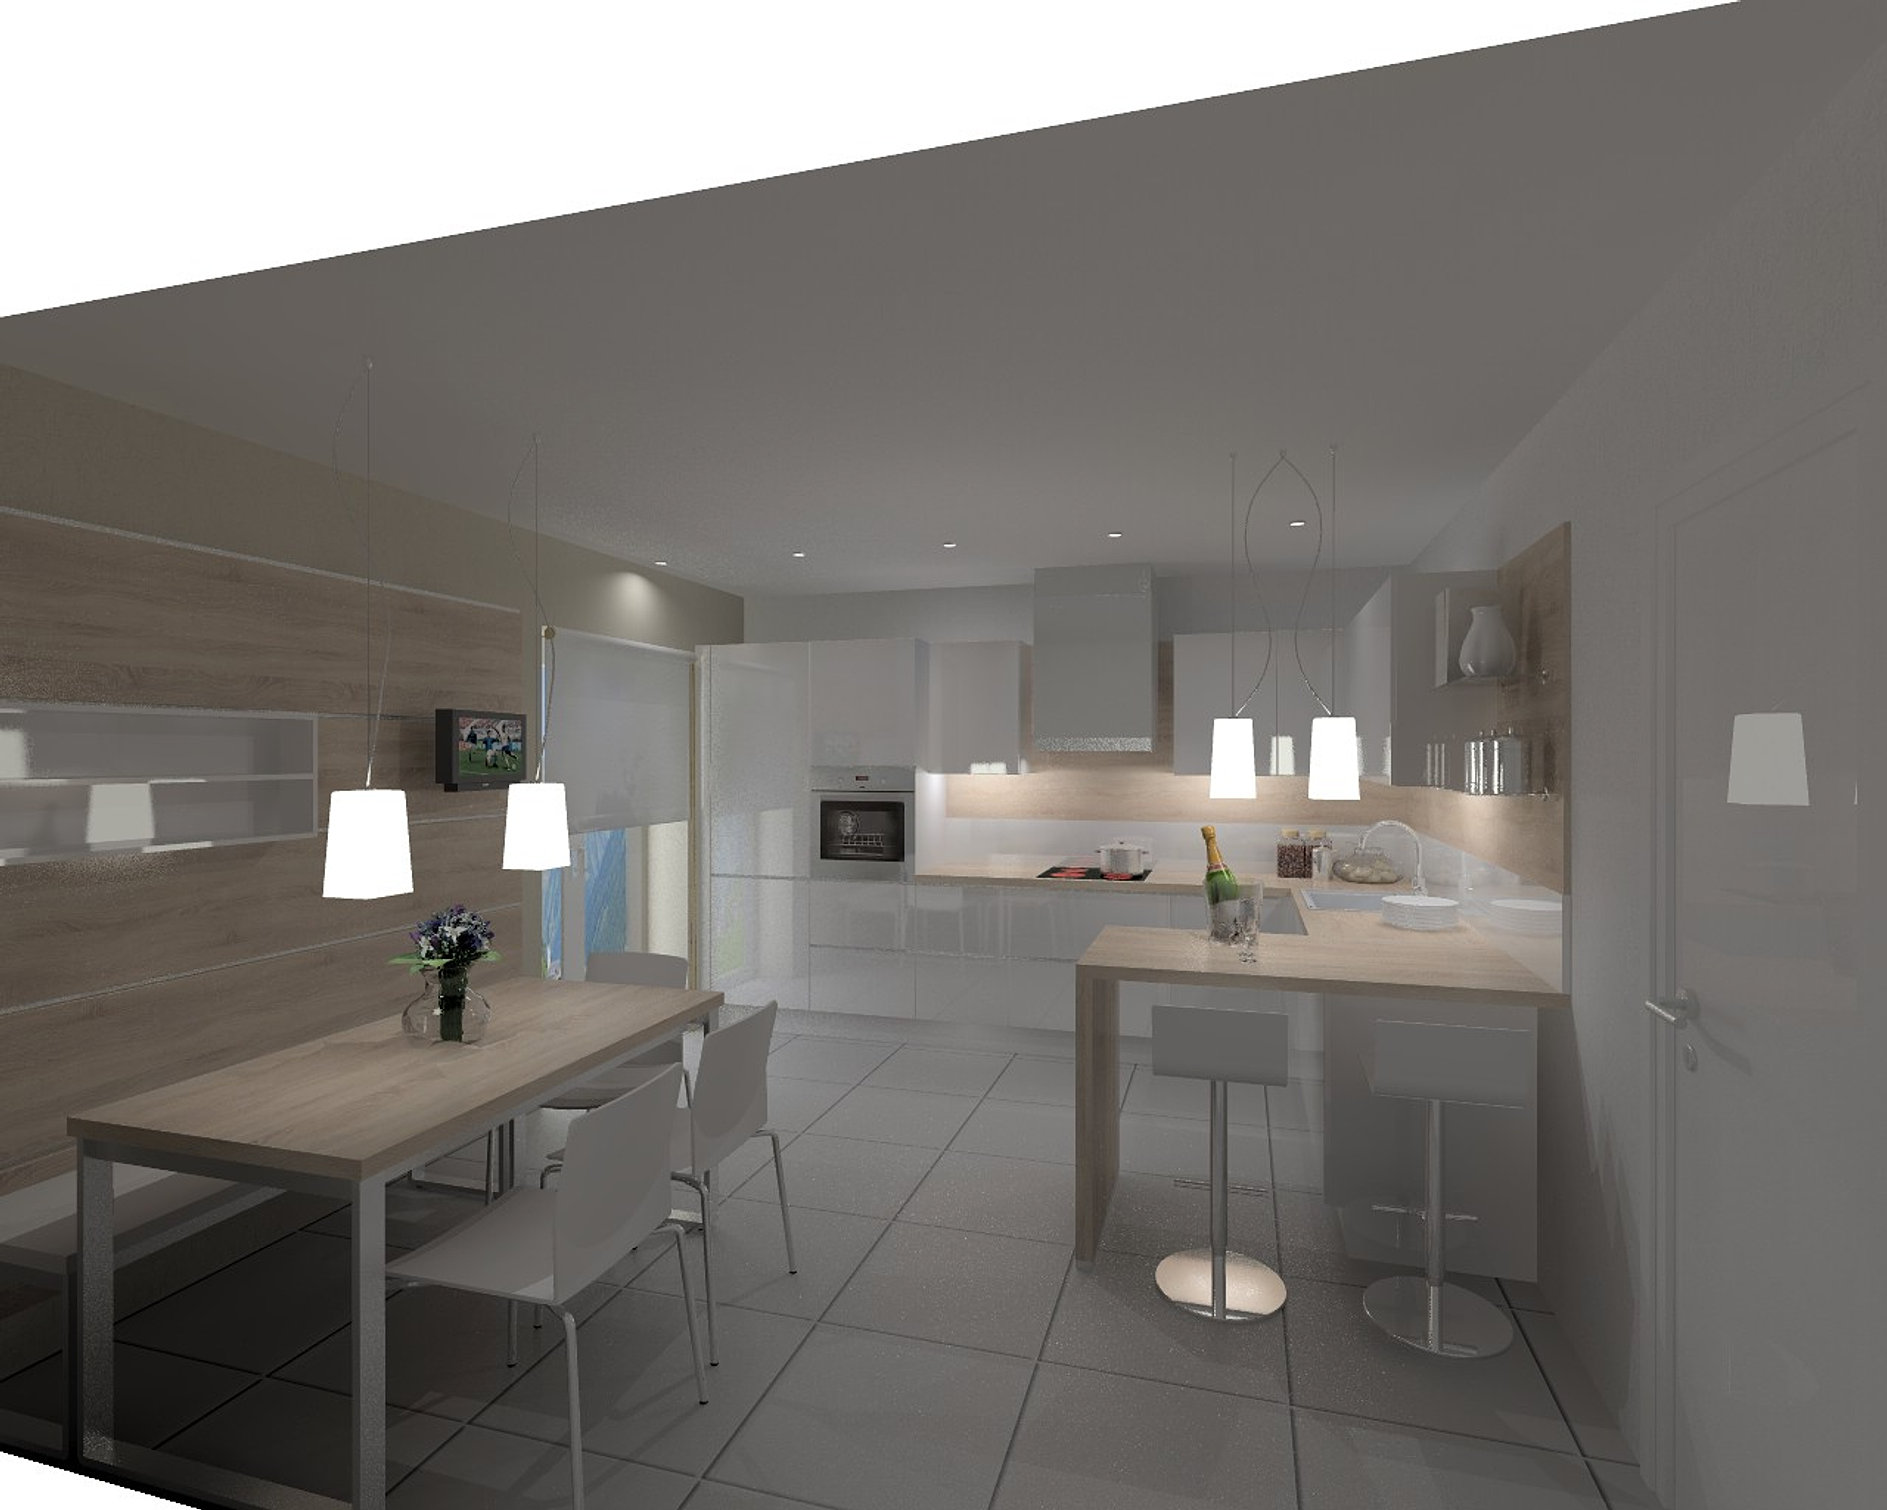 Progettare cucine online cgs cgs cgs stile cucina with for Disegnare cucina on line